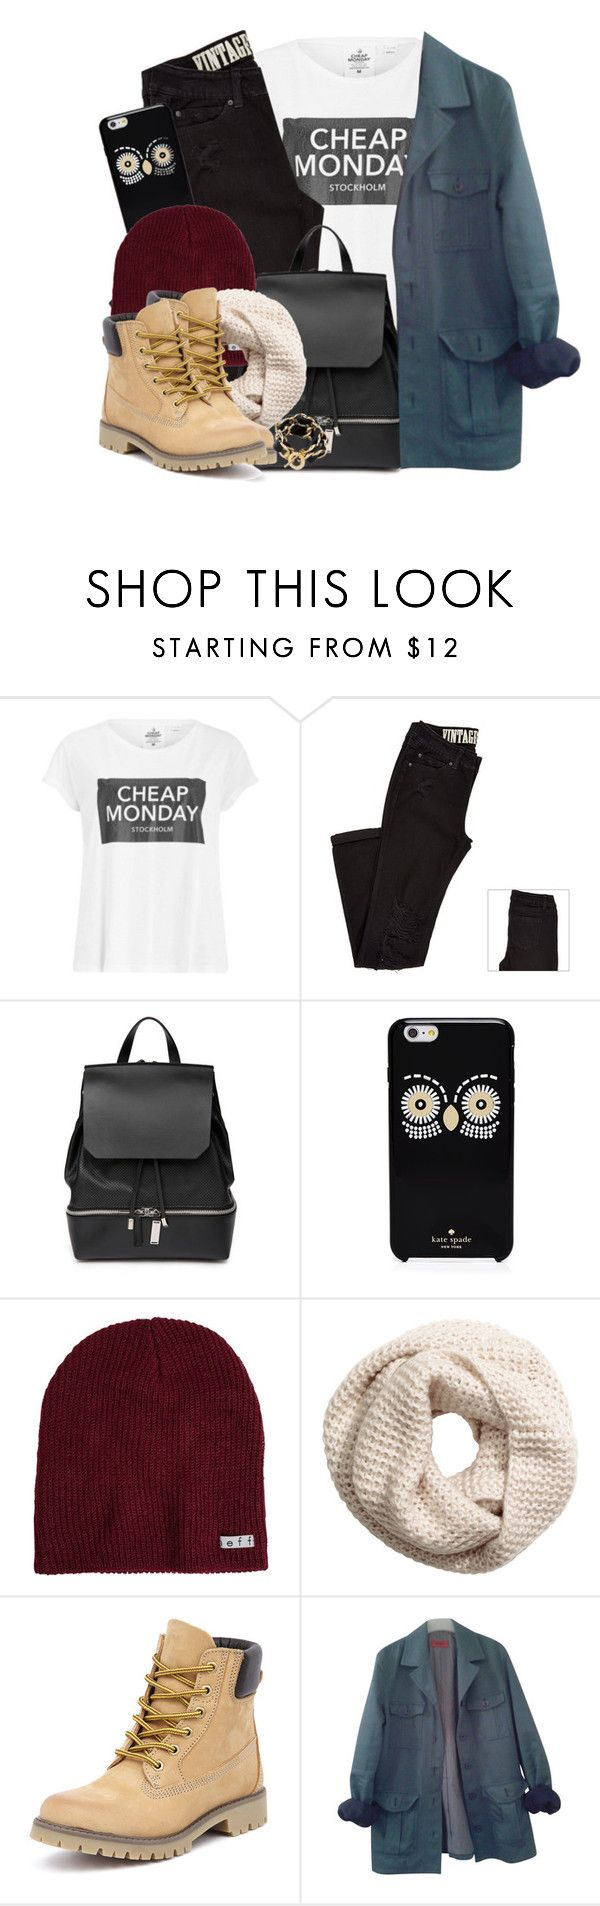 """""""Here // Alessia Cara"""" by nikki-huynh ❤ liked on Polyvore featuring Cheap Monday, COSTUME NATIONAL, Kate Spade, Neff, H&M, Bronx, HUGO and CC SKYE"""